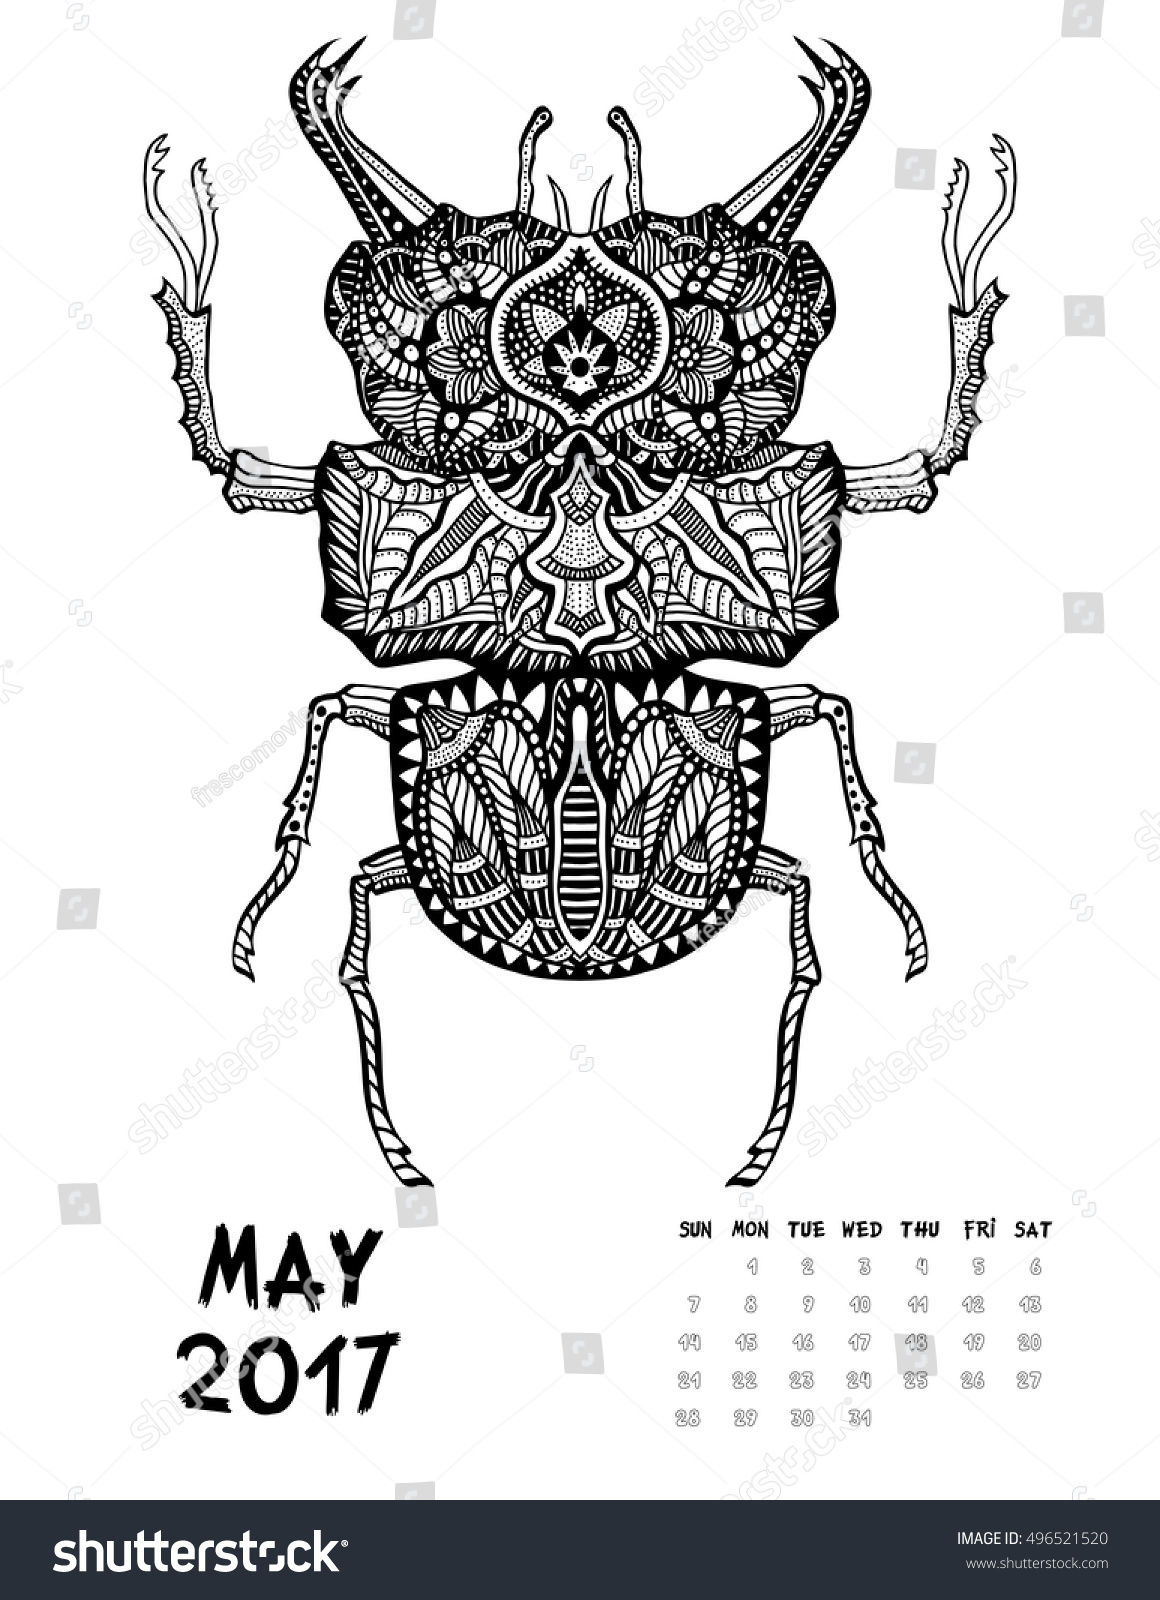 May Coloring Calendar 2017ColoringPrintable Coloring Pages Free